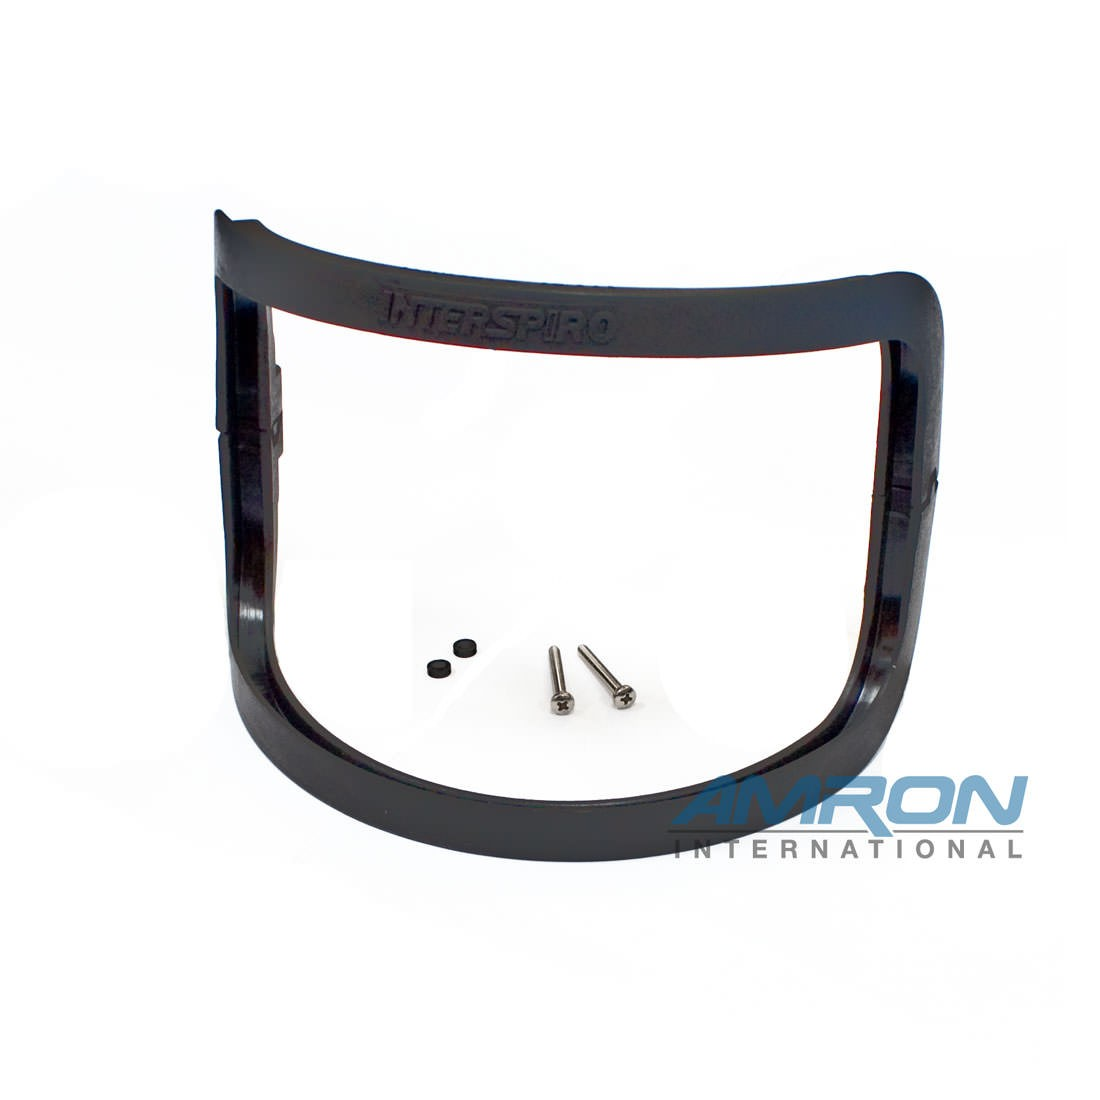 Interspiro AGA 460-190-547 Visor Frame Kit MKII Black - Includes No. 14-15